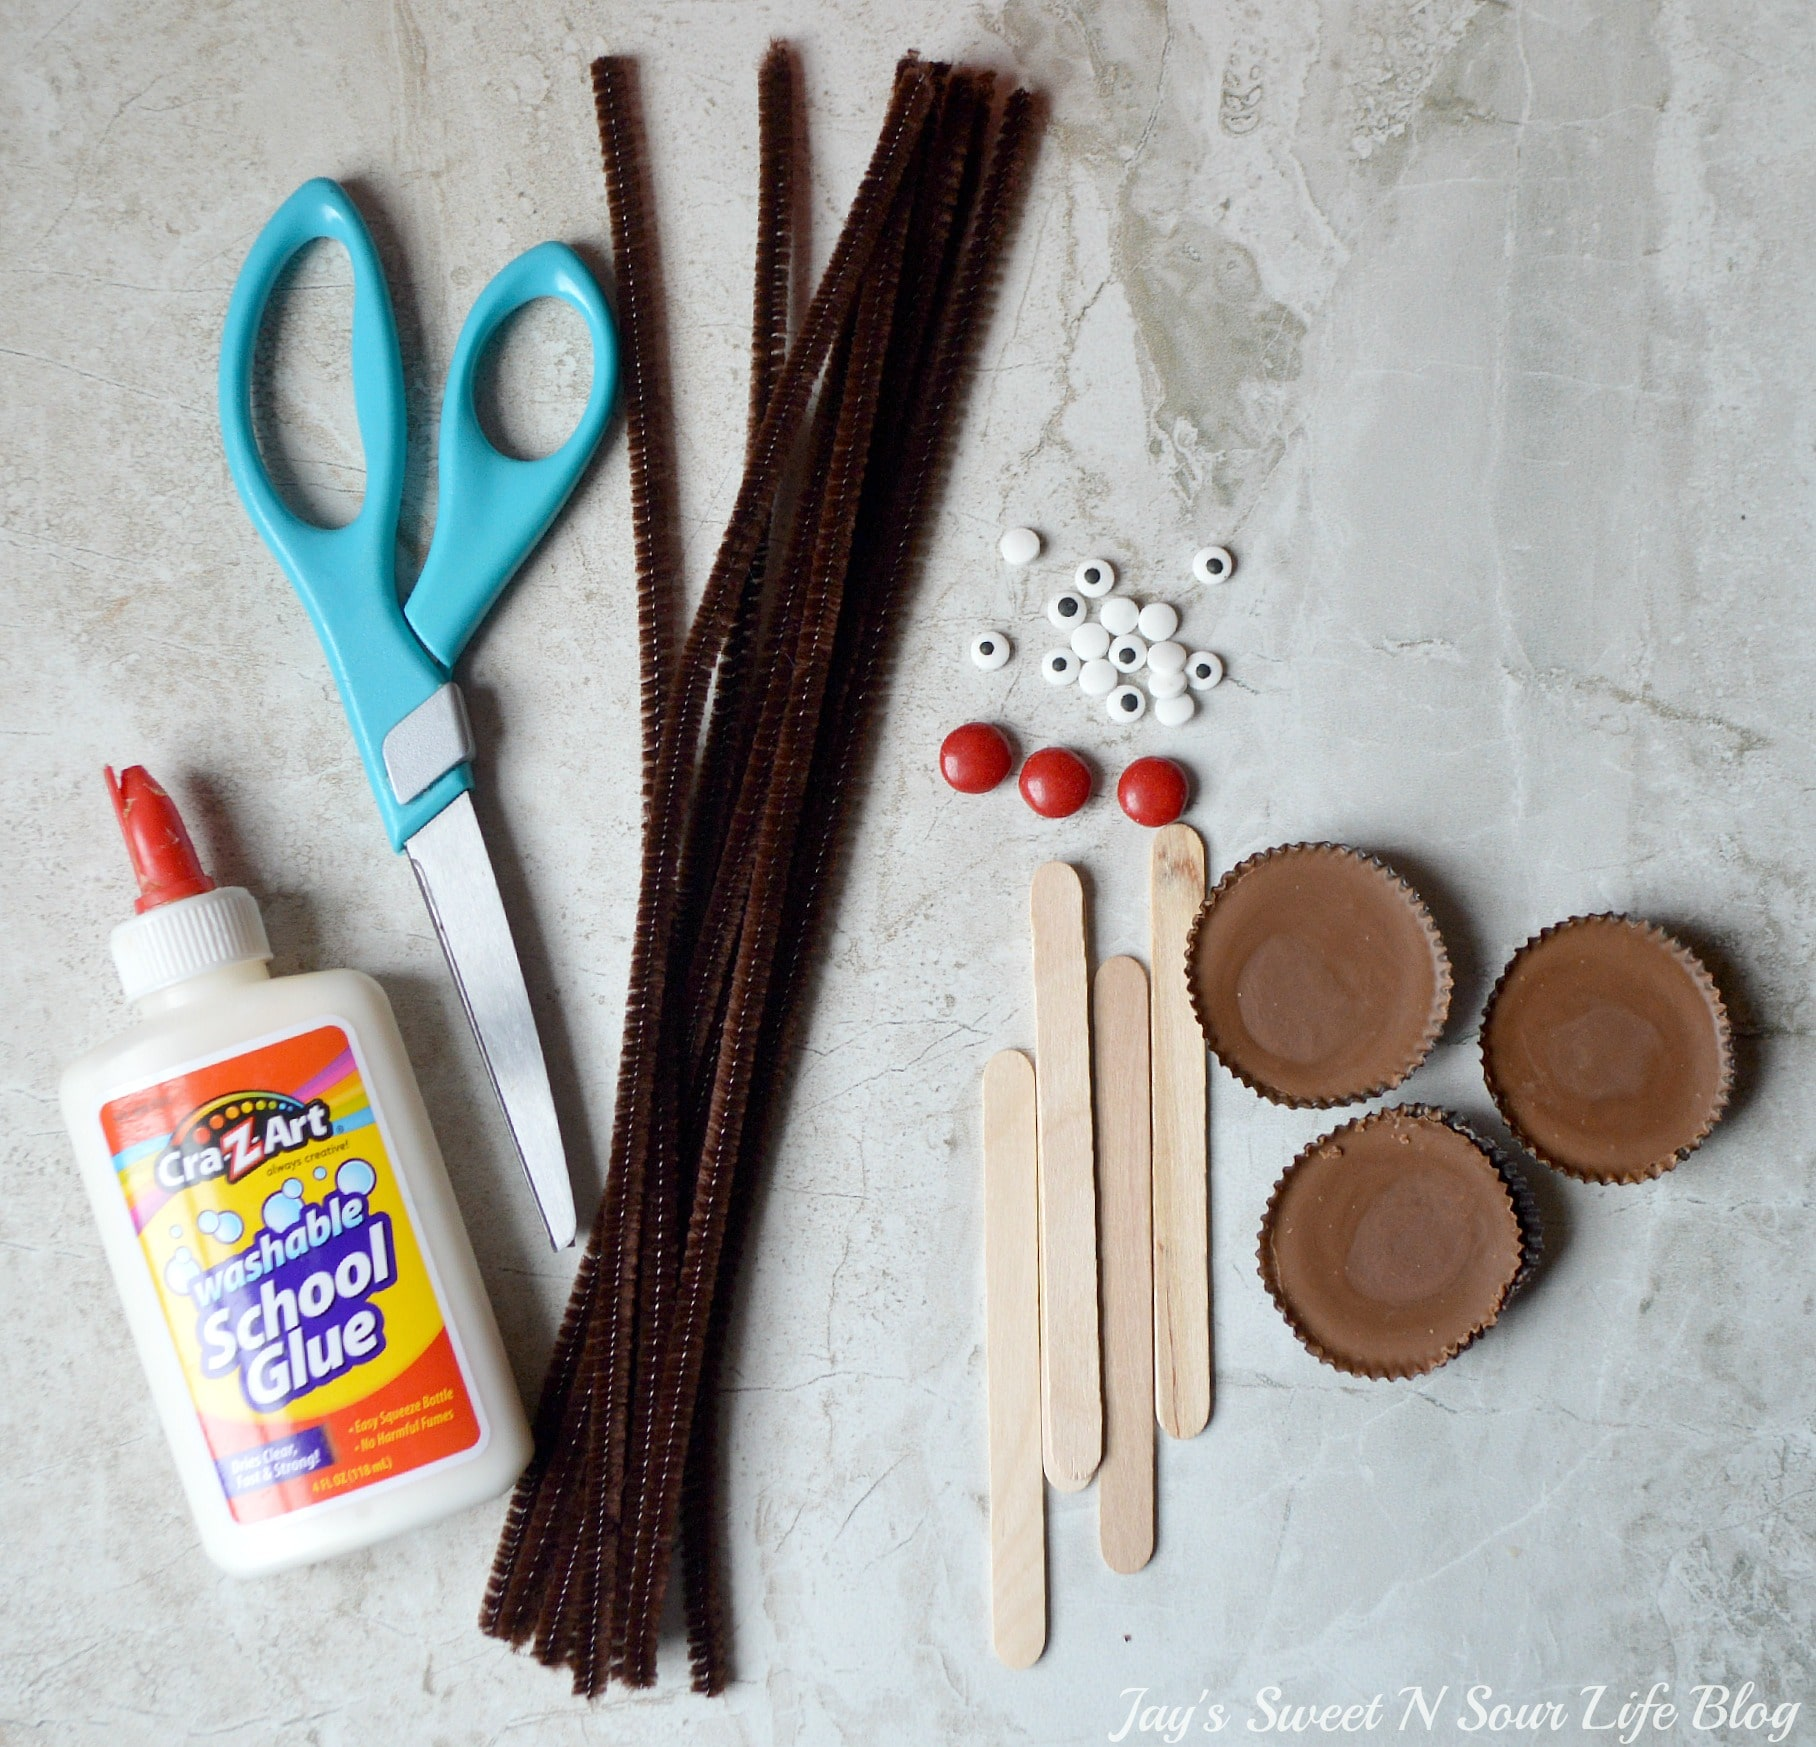 Edible Reindeer Supplies. Fun and easy to make, dash into the holiday season with an adorable Edible Rudolf. This Edible Christmas Craft is kid-friendly and perfect for holiday parties and gatherings.